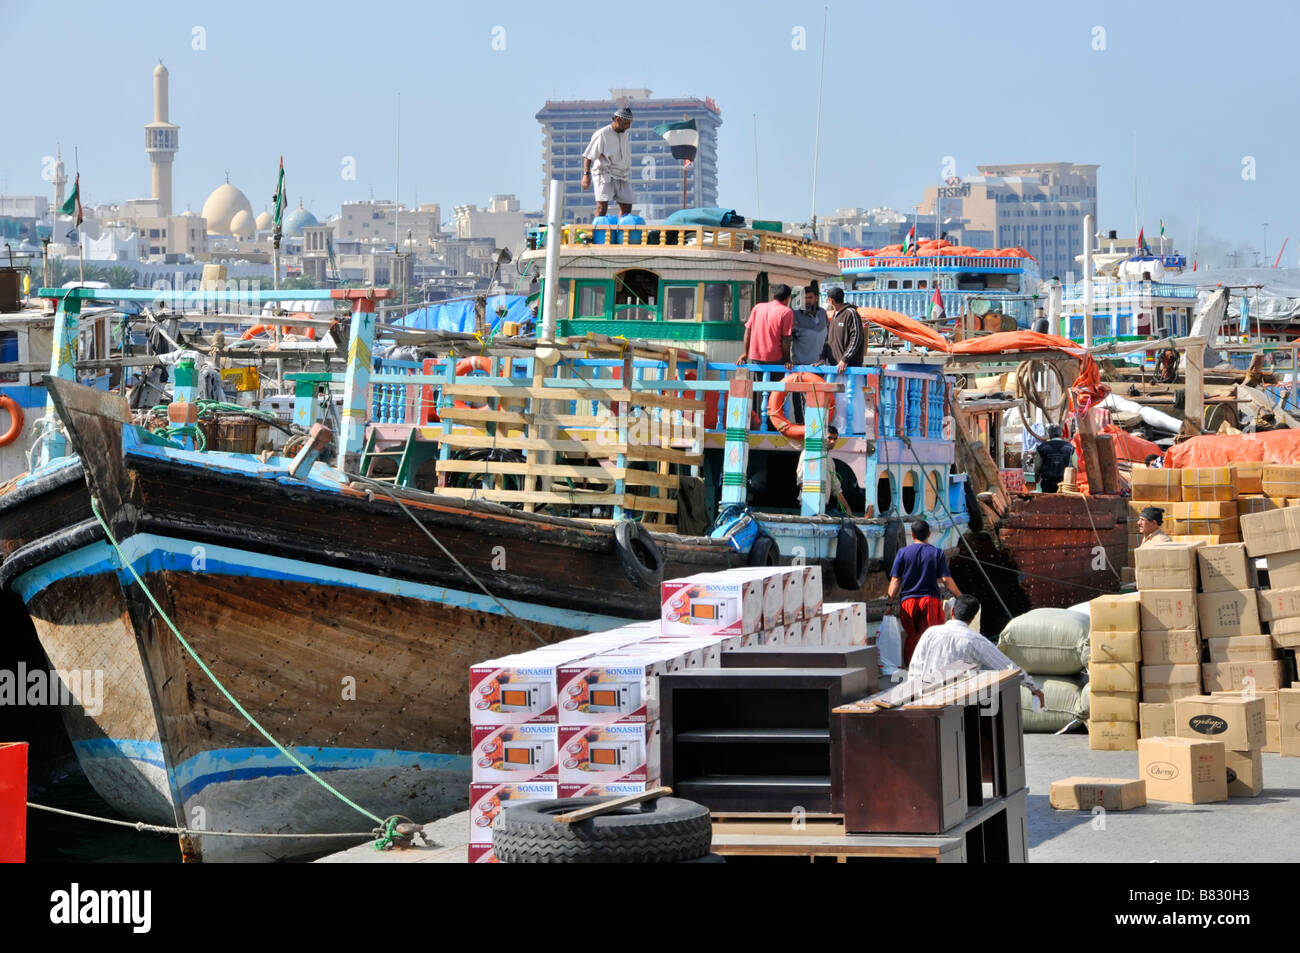 Dubai Creek and dhows with goods and merchandise stacked on the